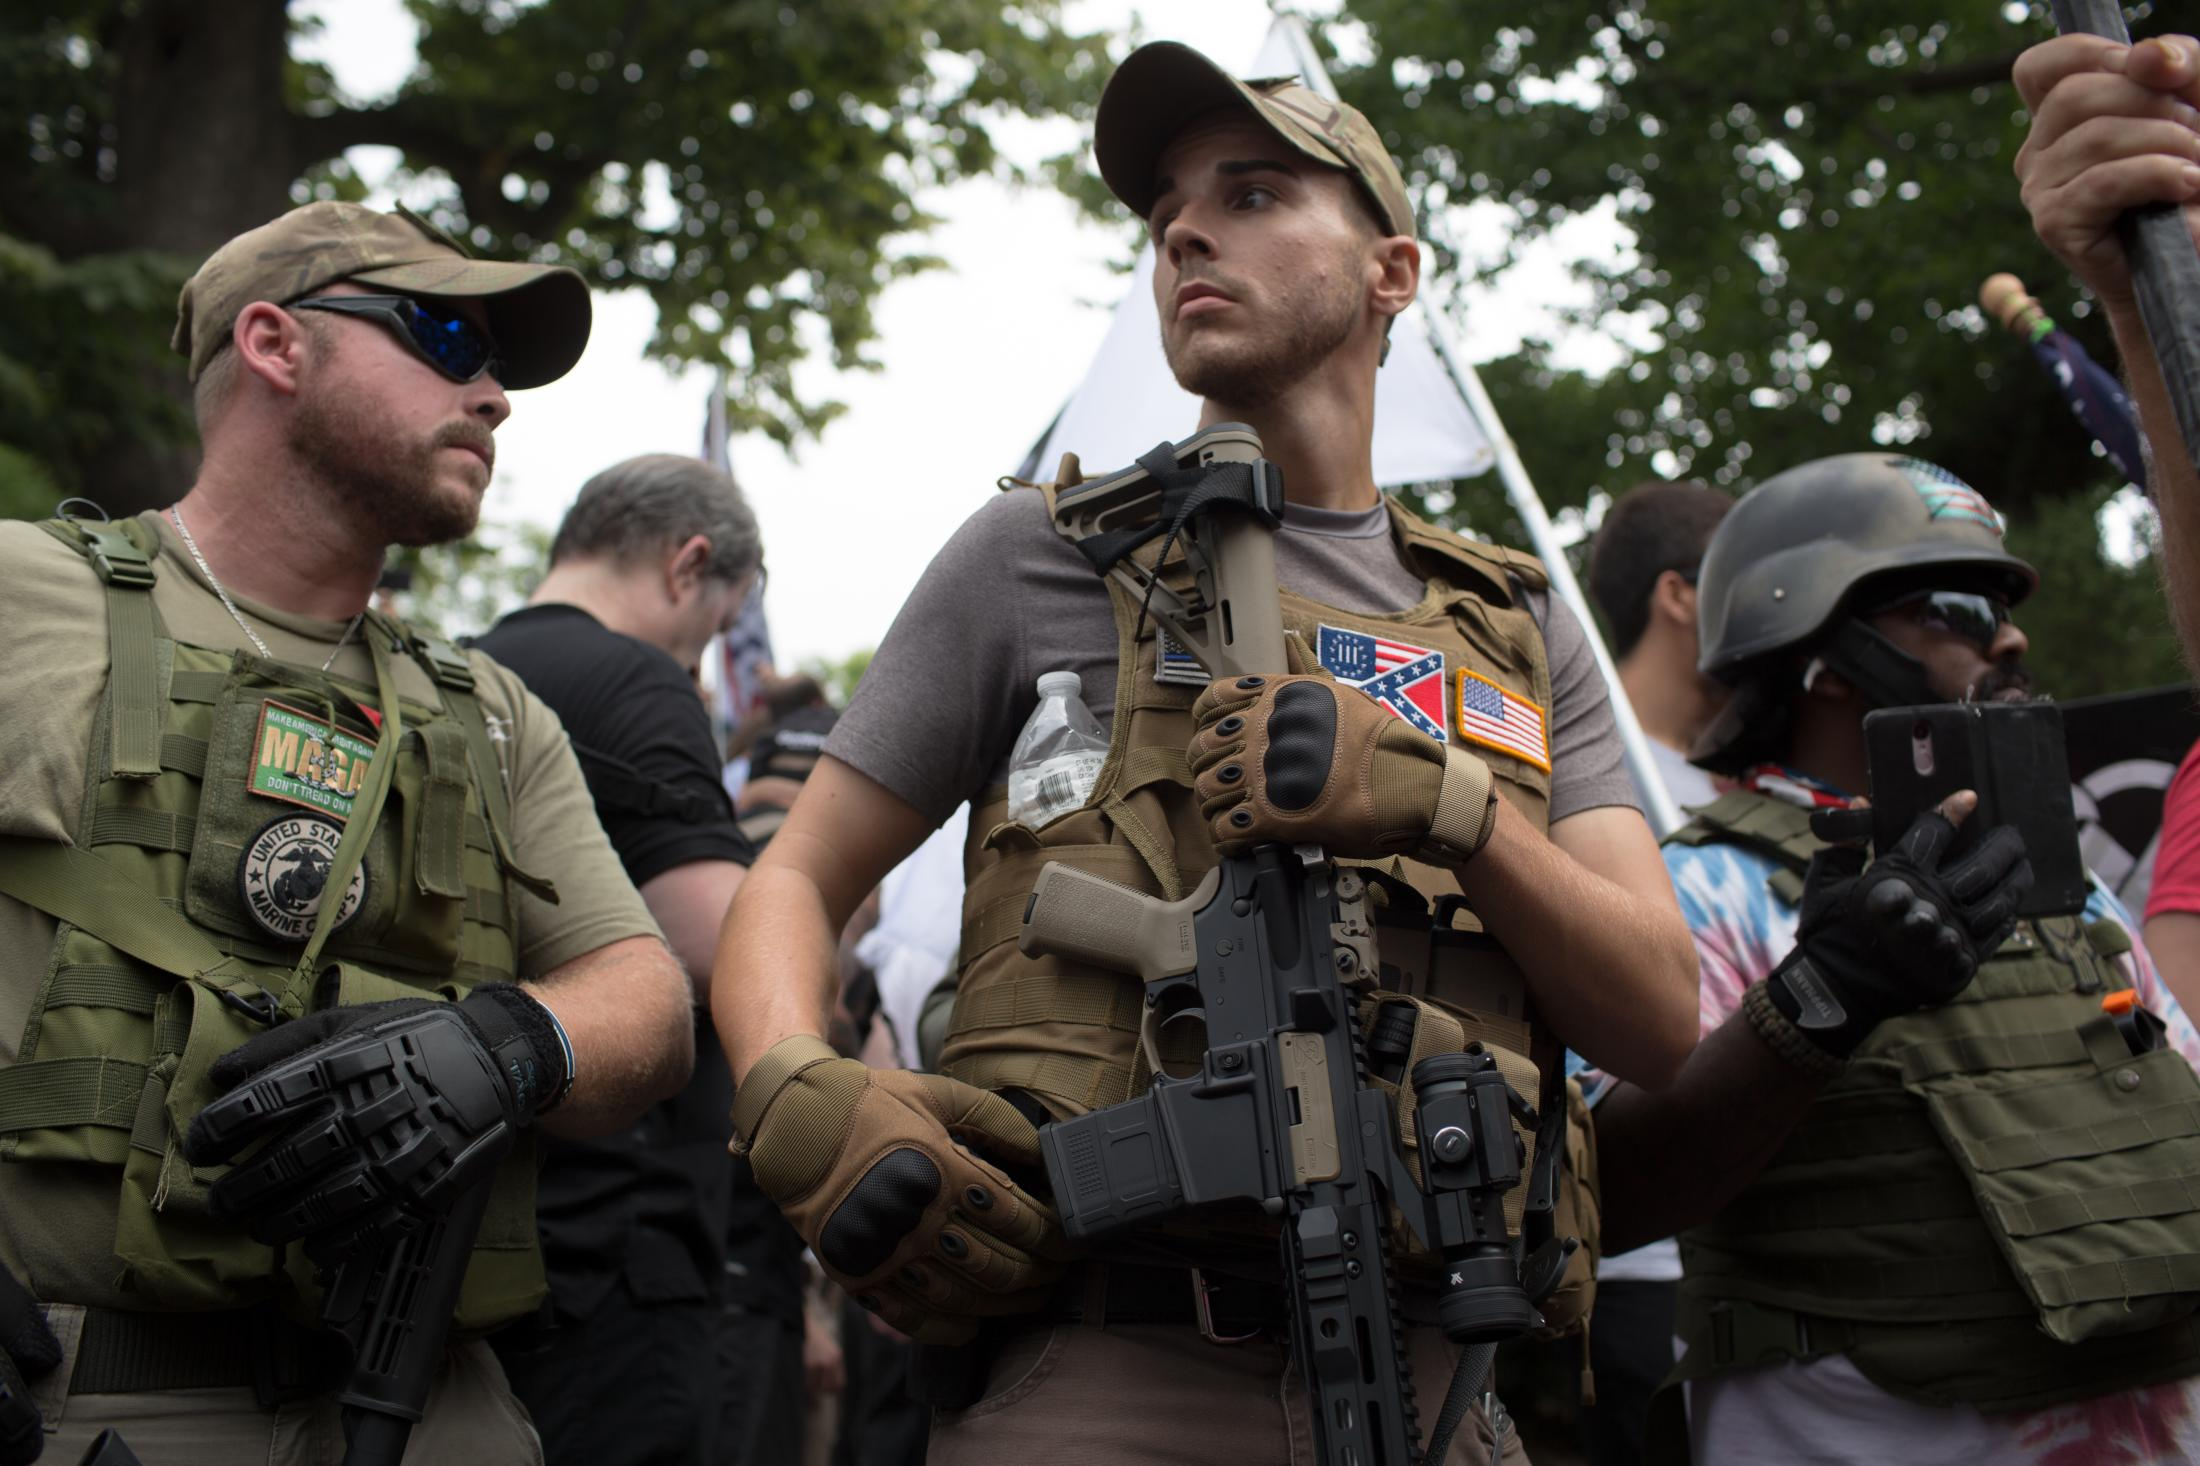 Militia members stand guard around Emancipation Park in Charlottesville, VA as protesters make their way into Emancipation Park for the Unite the Right rally on August 12, 2017.